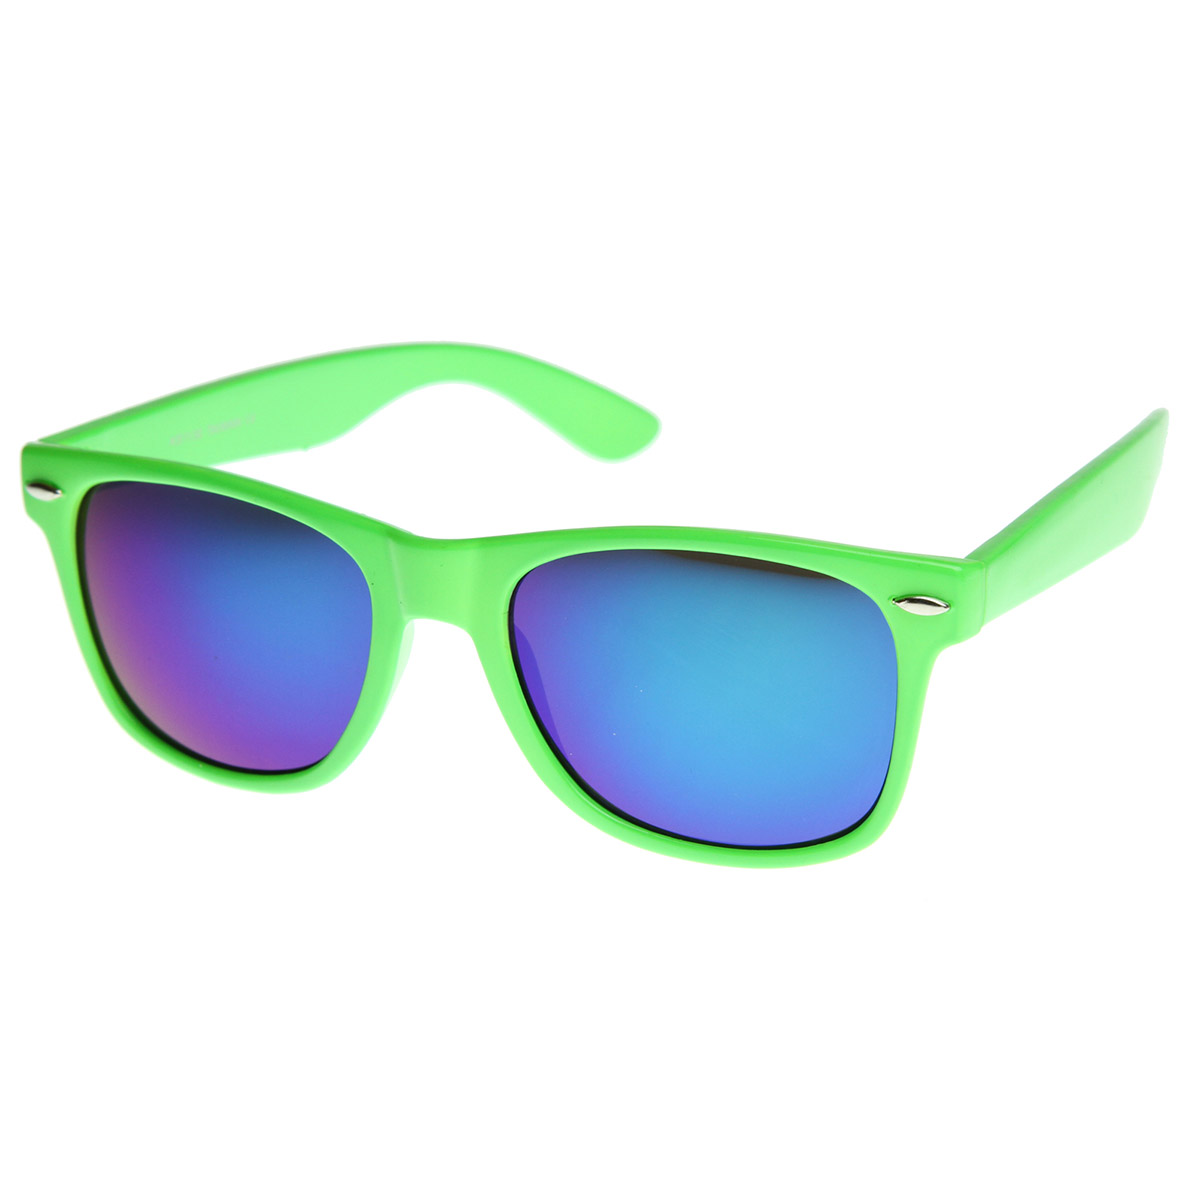 afb259e88ec Retro Bright Horn Rimmed Sunglasses with Colorful Mirrored Lenses - UV400